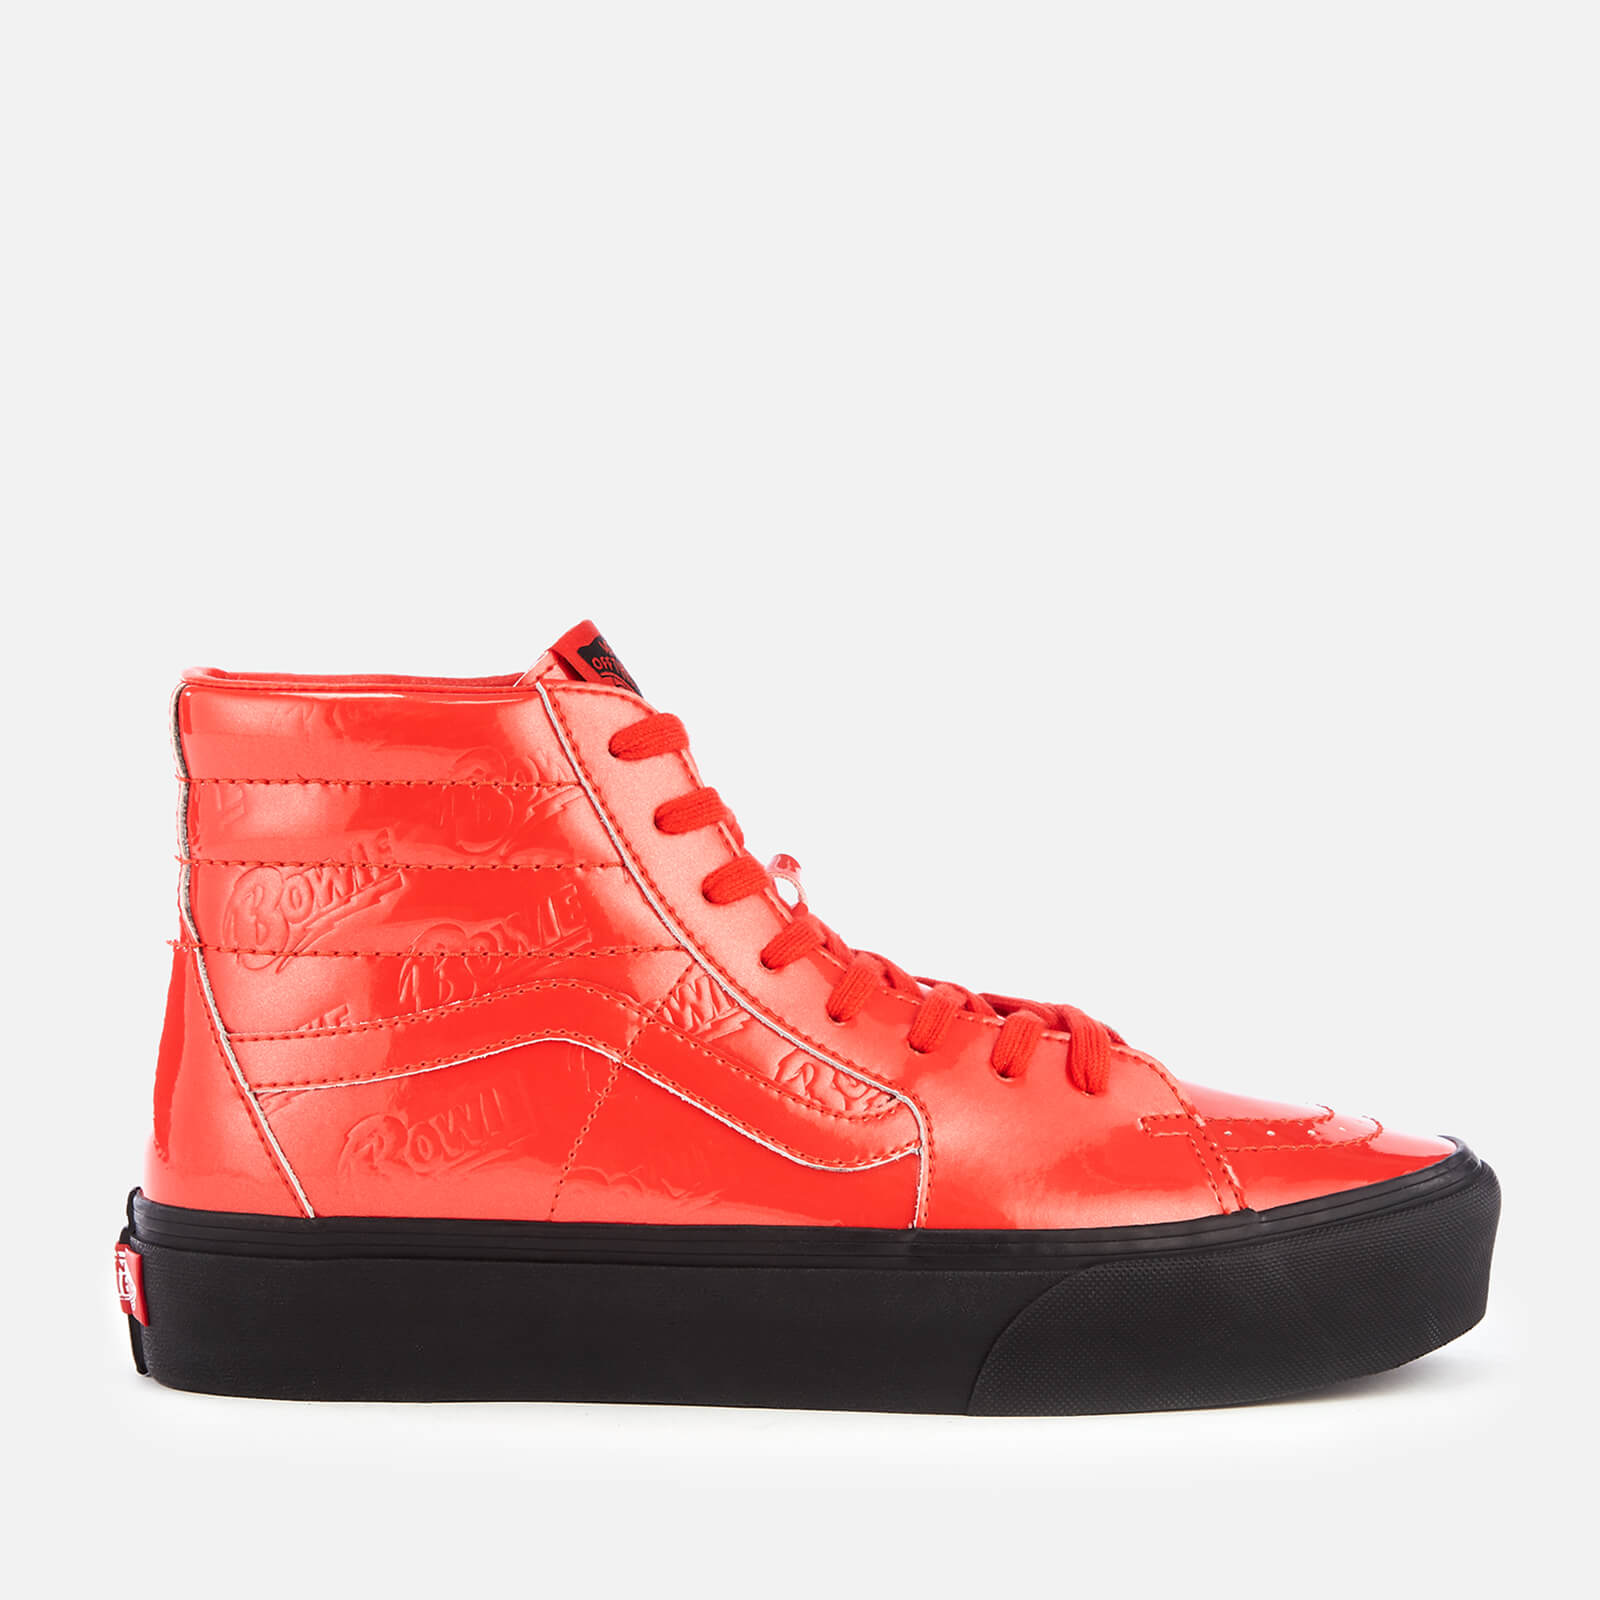 2d266ad730a1f8 Vans X David Bowie Sk8-Hi Platform 2.0 Trainers - Ziggy Stardust Red Black  - Free UK Delivery over £50